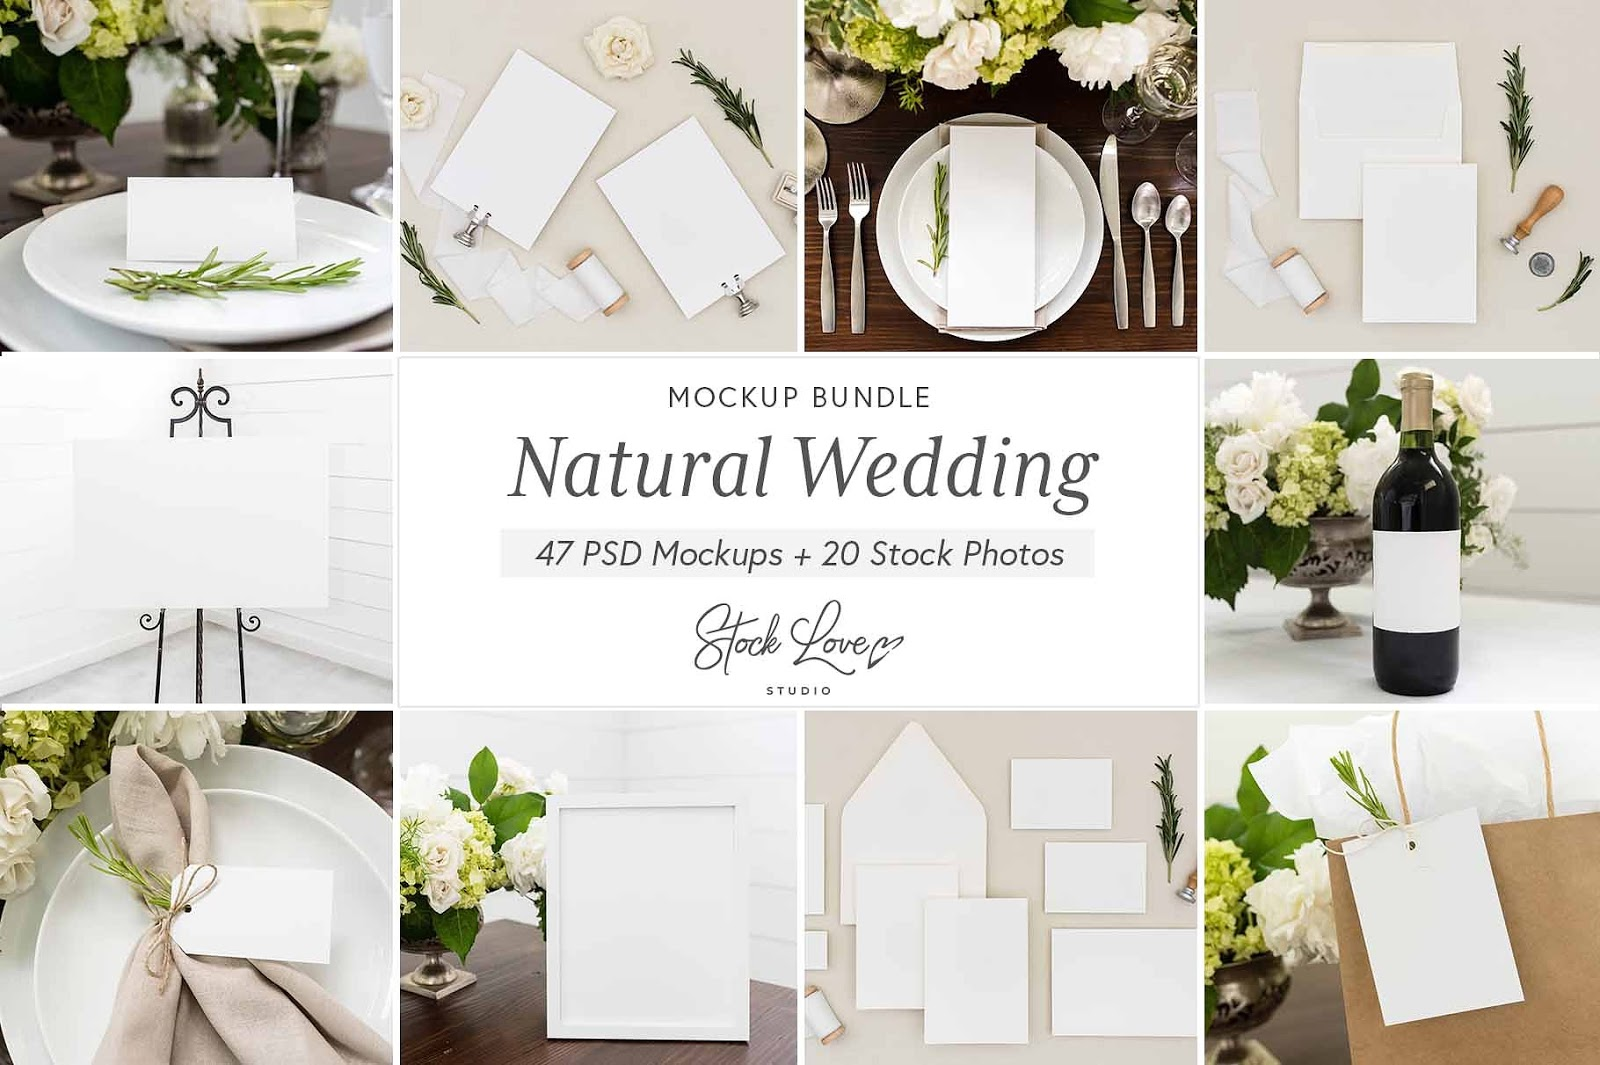 Natural Wedding Mockup Bundle